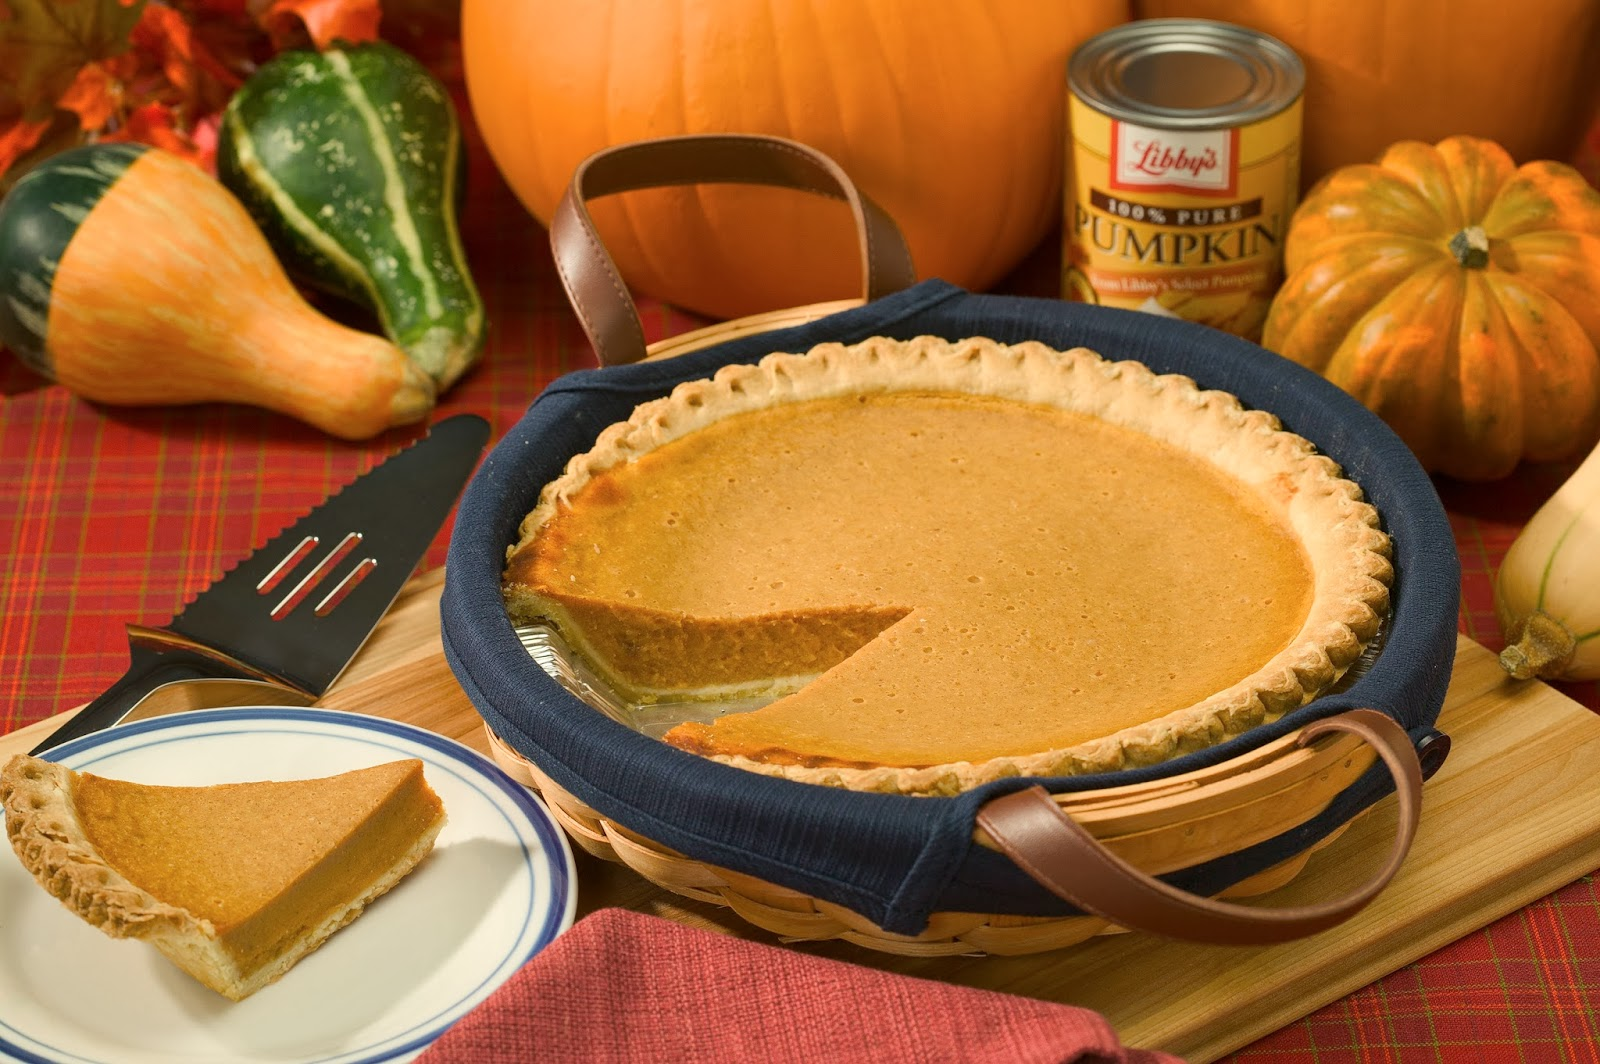 New england folklore americas oldest pumpkin pie recipe the first published pumpkin pie recipes appears in amelia simmonss book american cookery which was printed in connecticut in 1796 forumfinder Choice Image